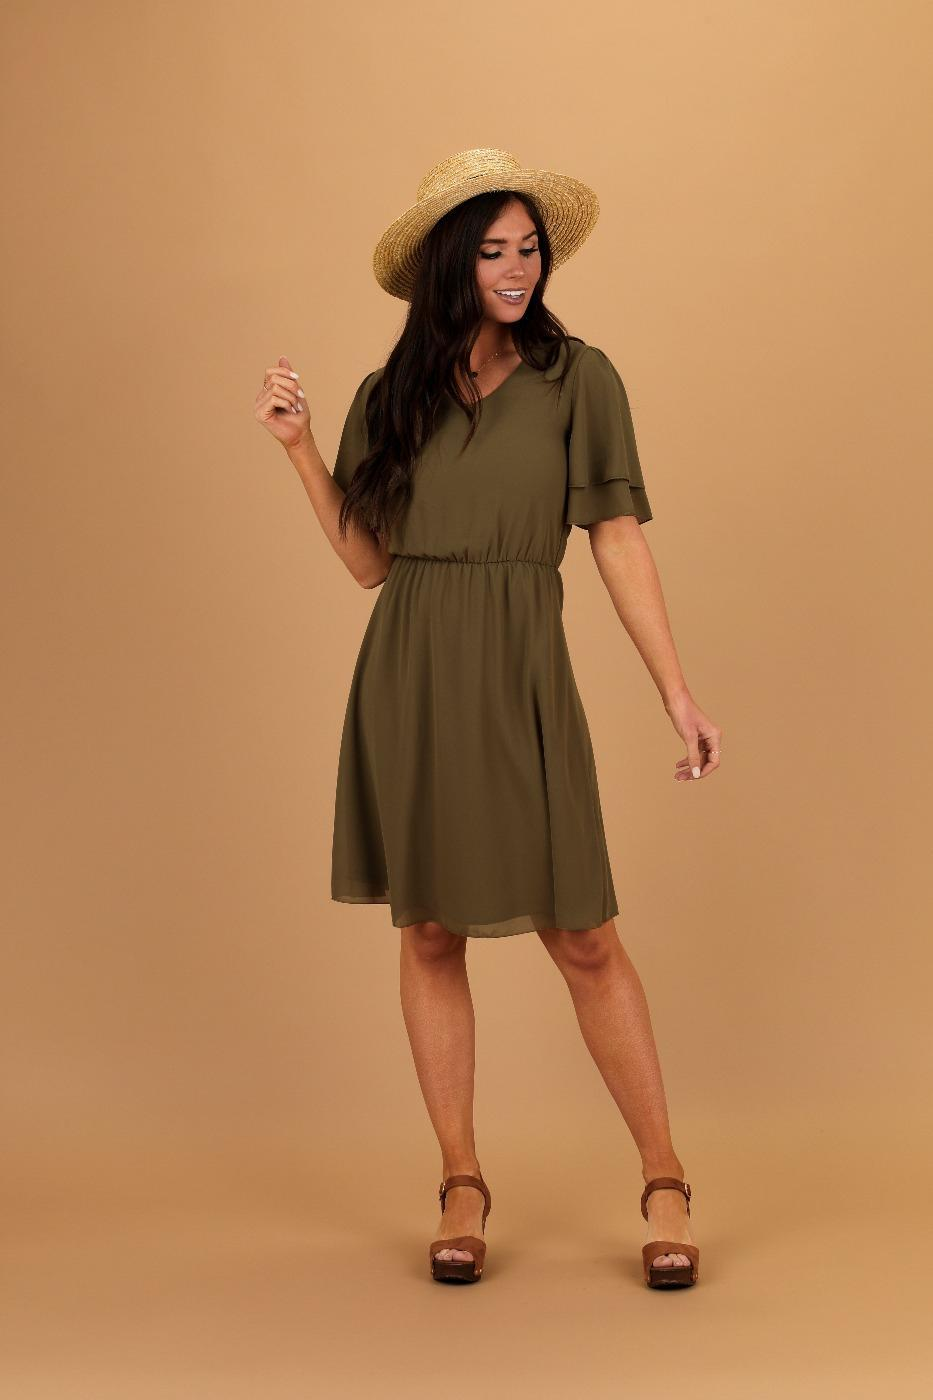 Claire Olive Modest Casual Dress from A Closet Full of Dresses